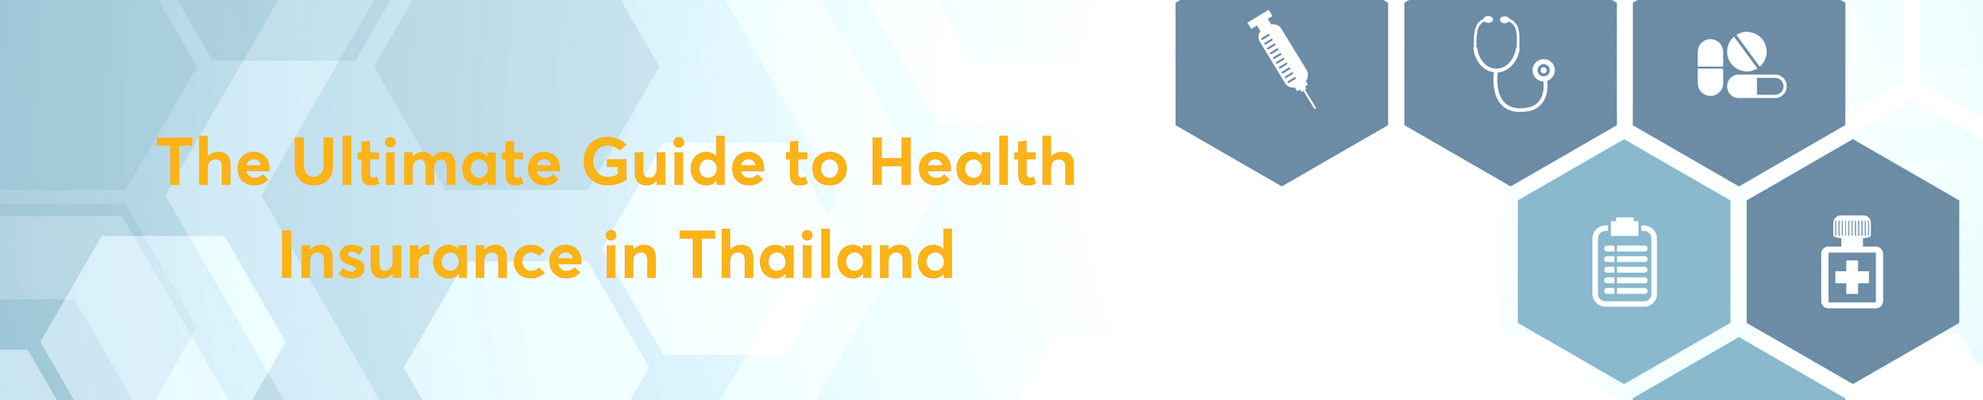 The Ultimate Guide to 		Health Insurance in Thailand